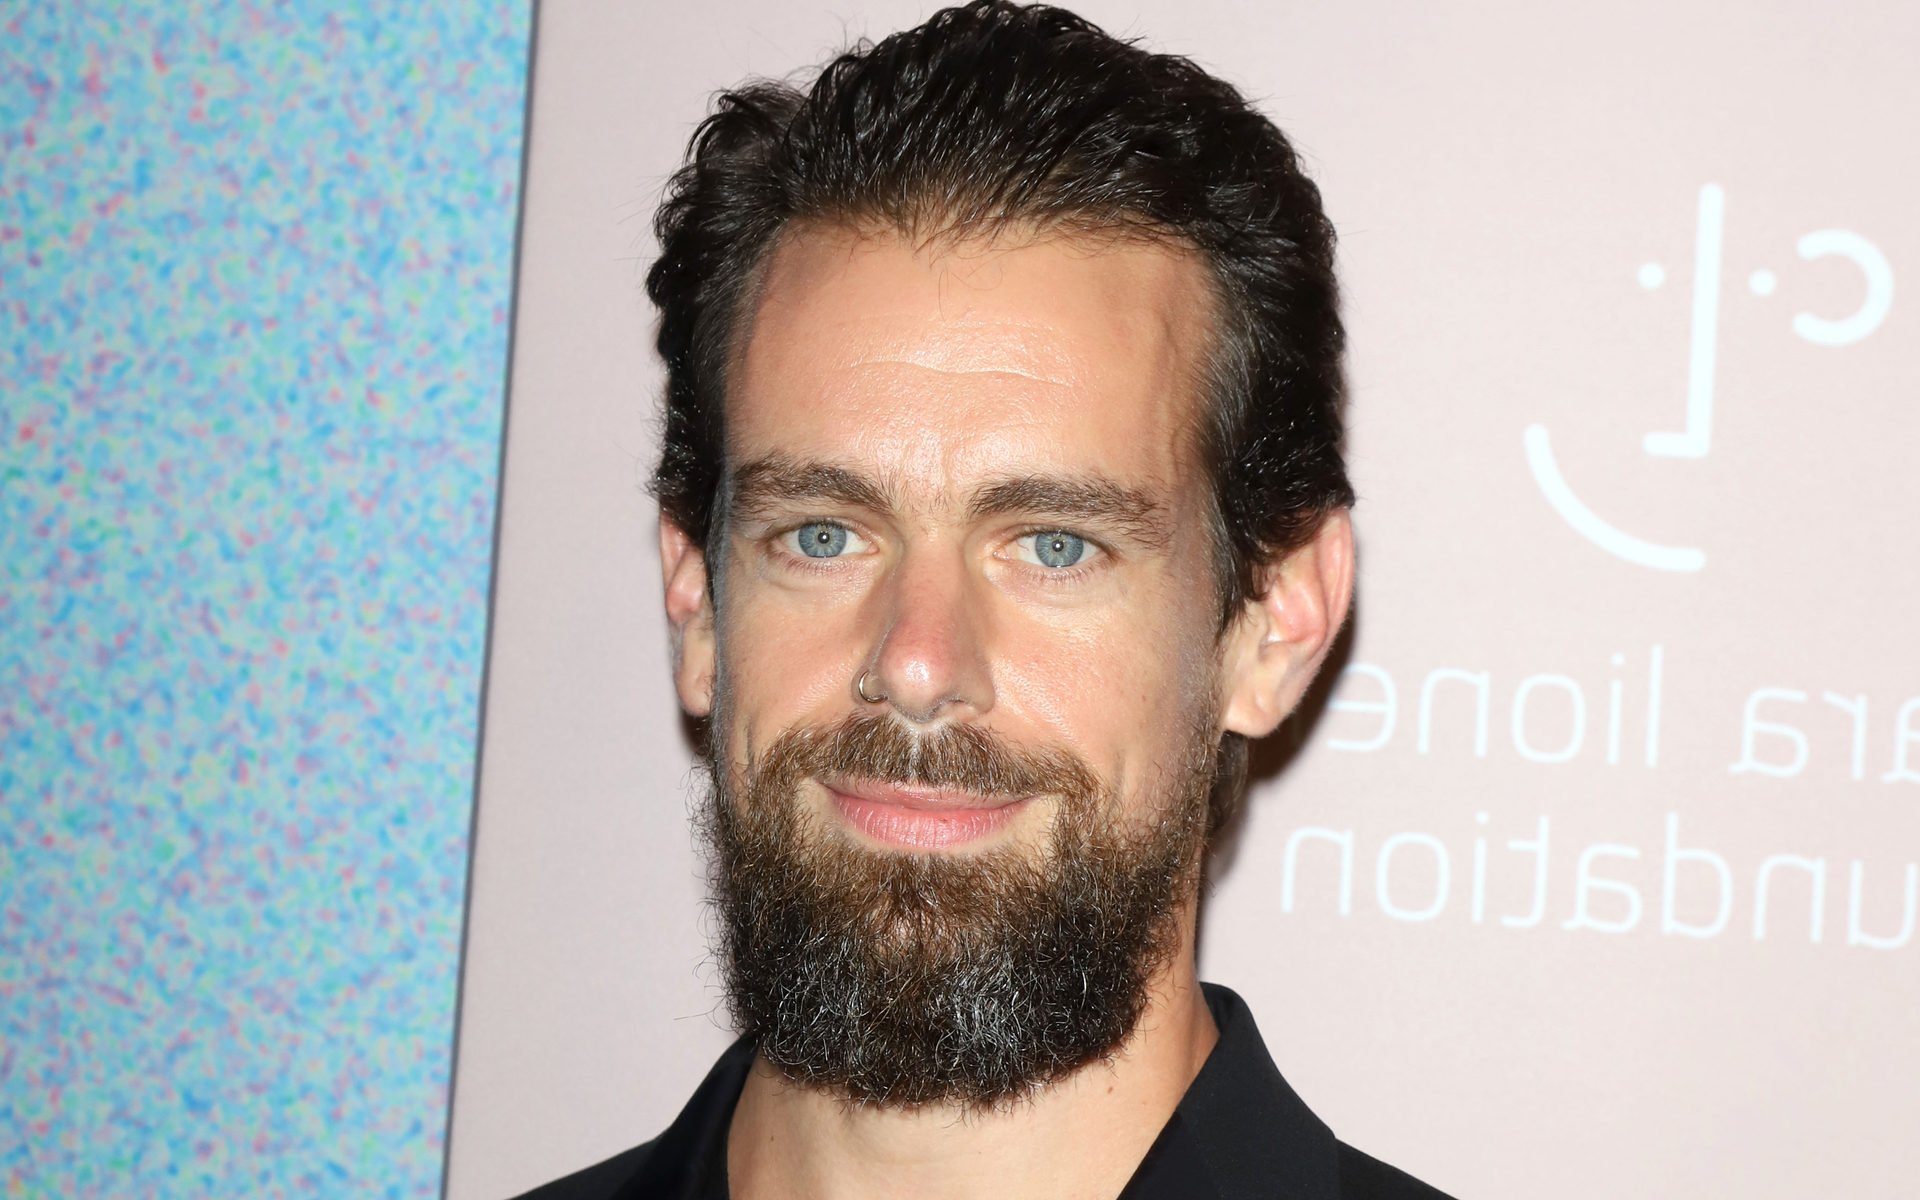 Jack Dorsey Praises Open Source, Buys Trezor Bitcoin Hardware Wallet